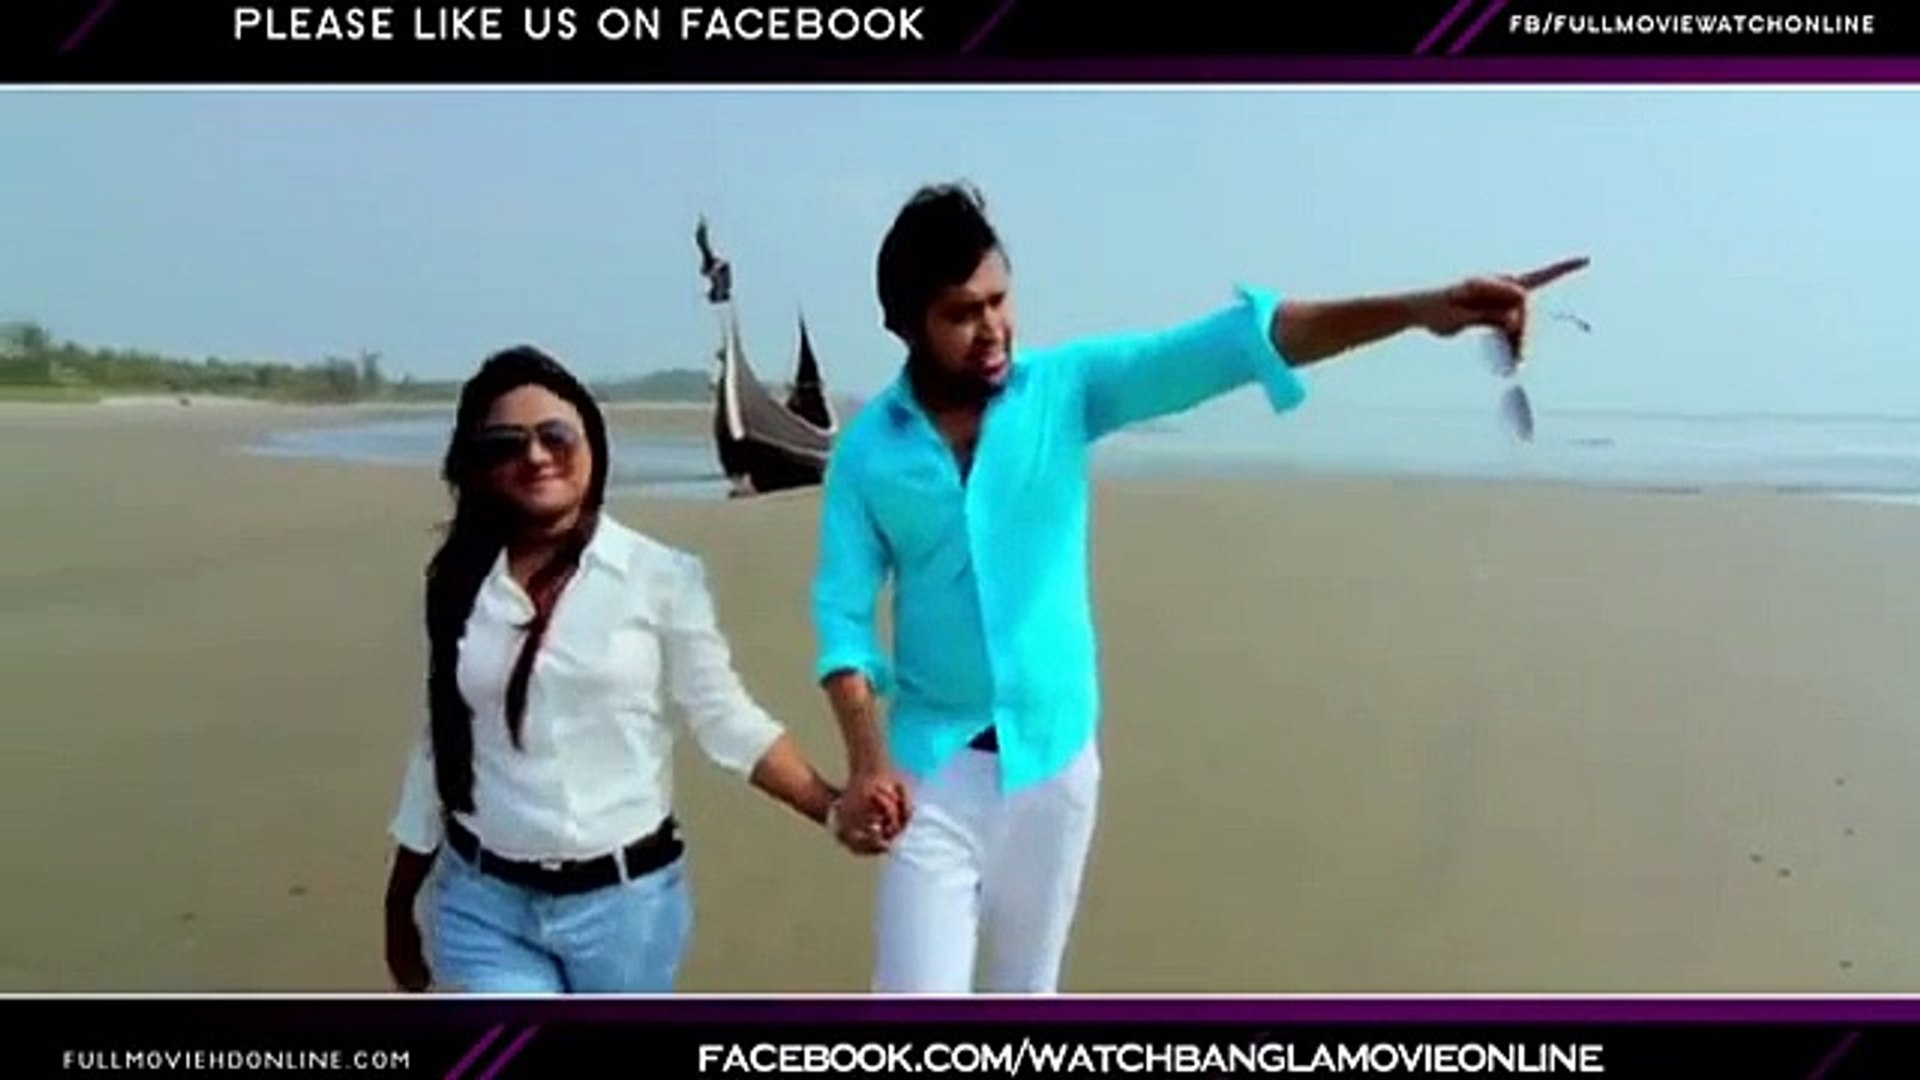 Bangla Song Gan Full HD 2014 Ridoyer Janala BD Music Video Bangla New Song ;Bangla Song Gan Full HD